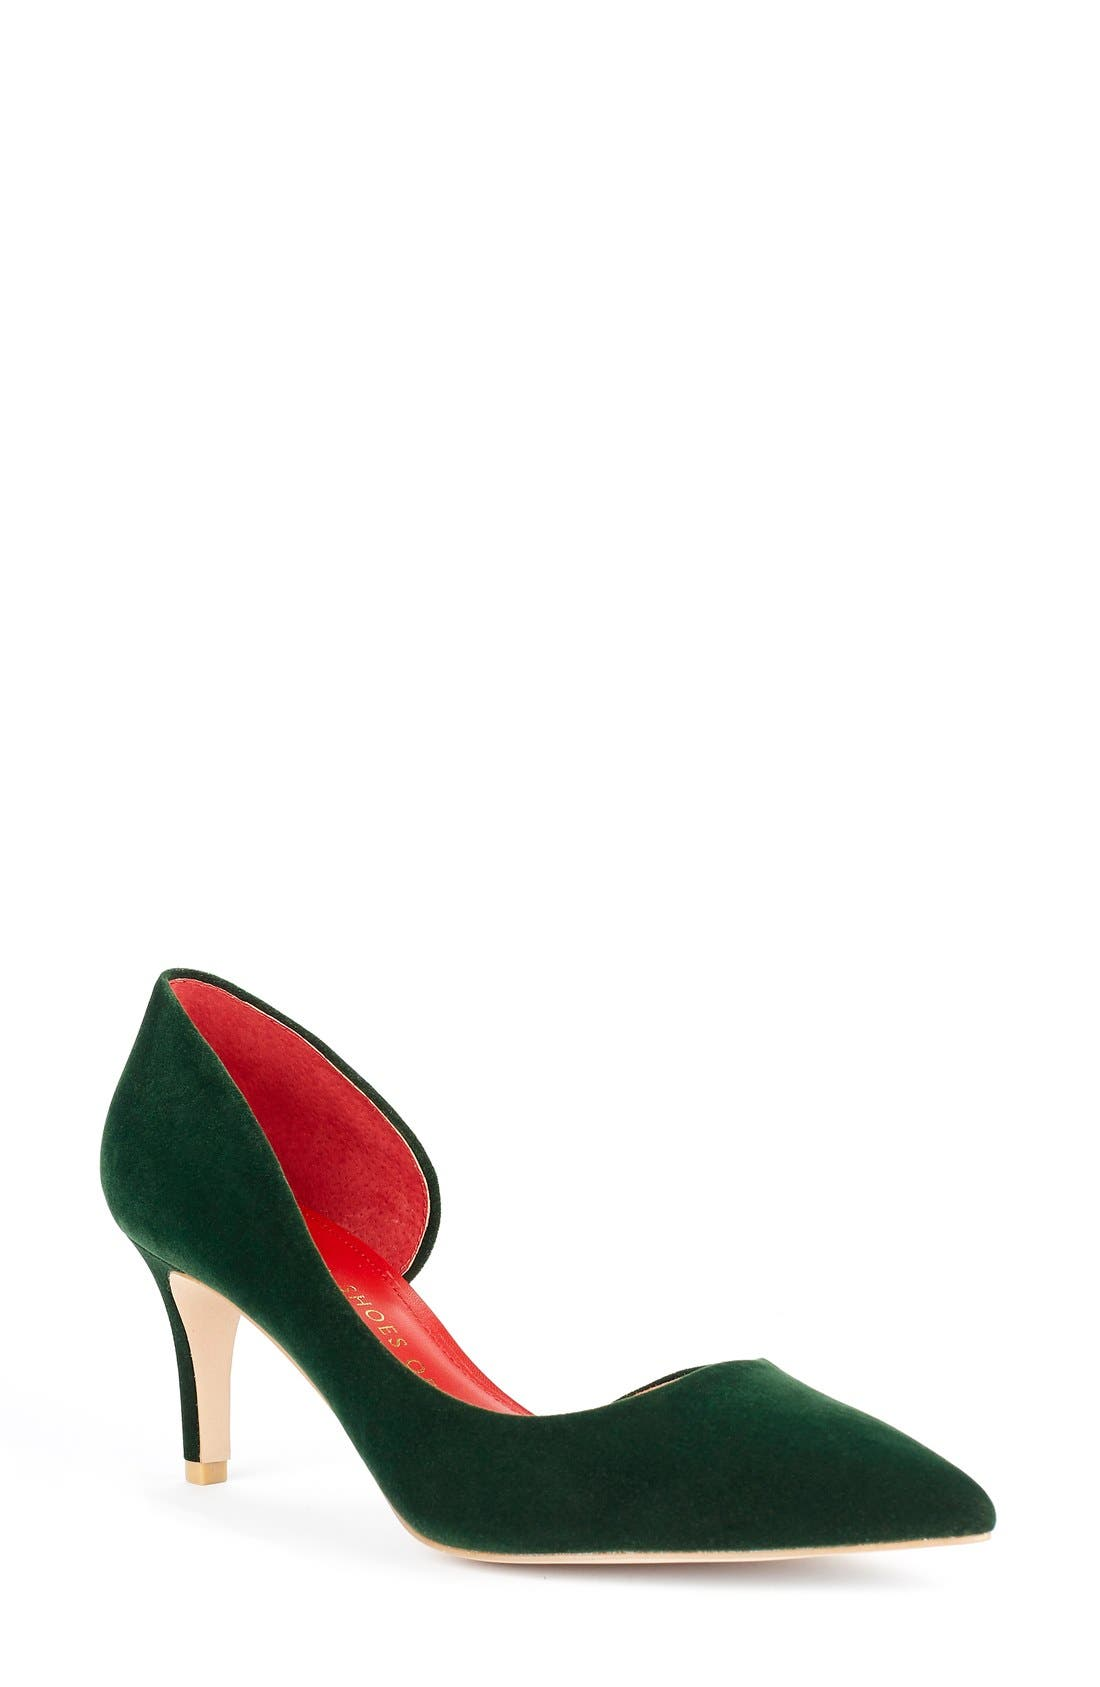 Alternate Image 1 Selected - Shoes of Prey x Kim Jones La Dolce Vita Collection Half d'Orsay Pump (Women)